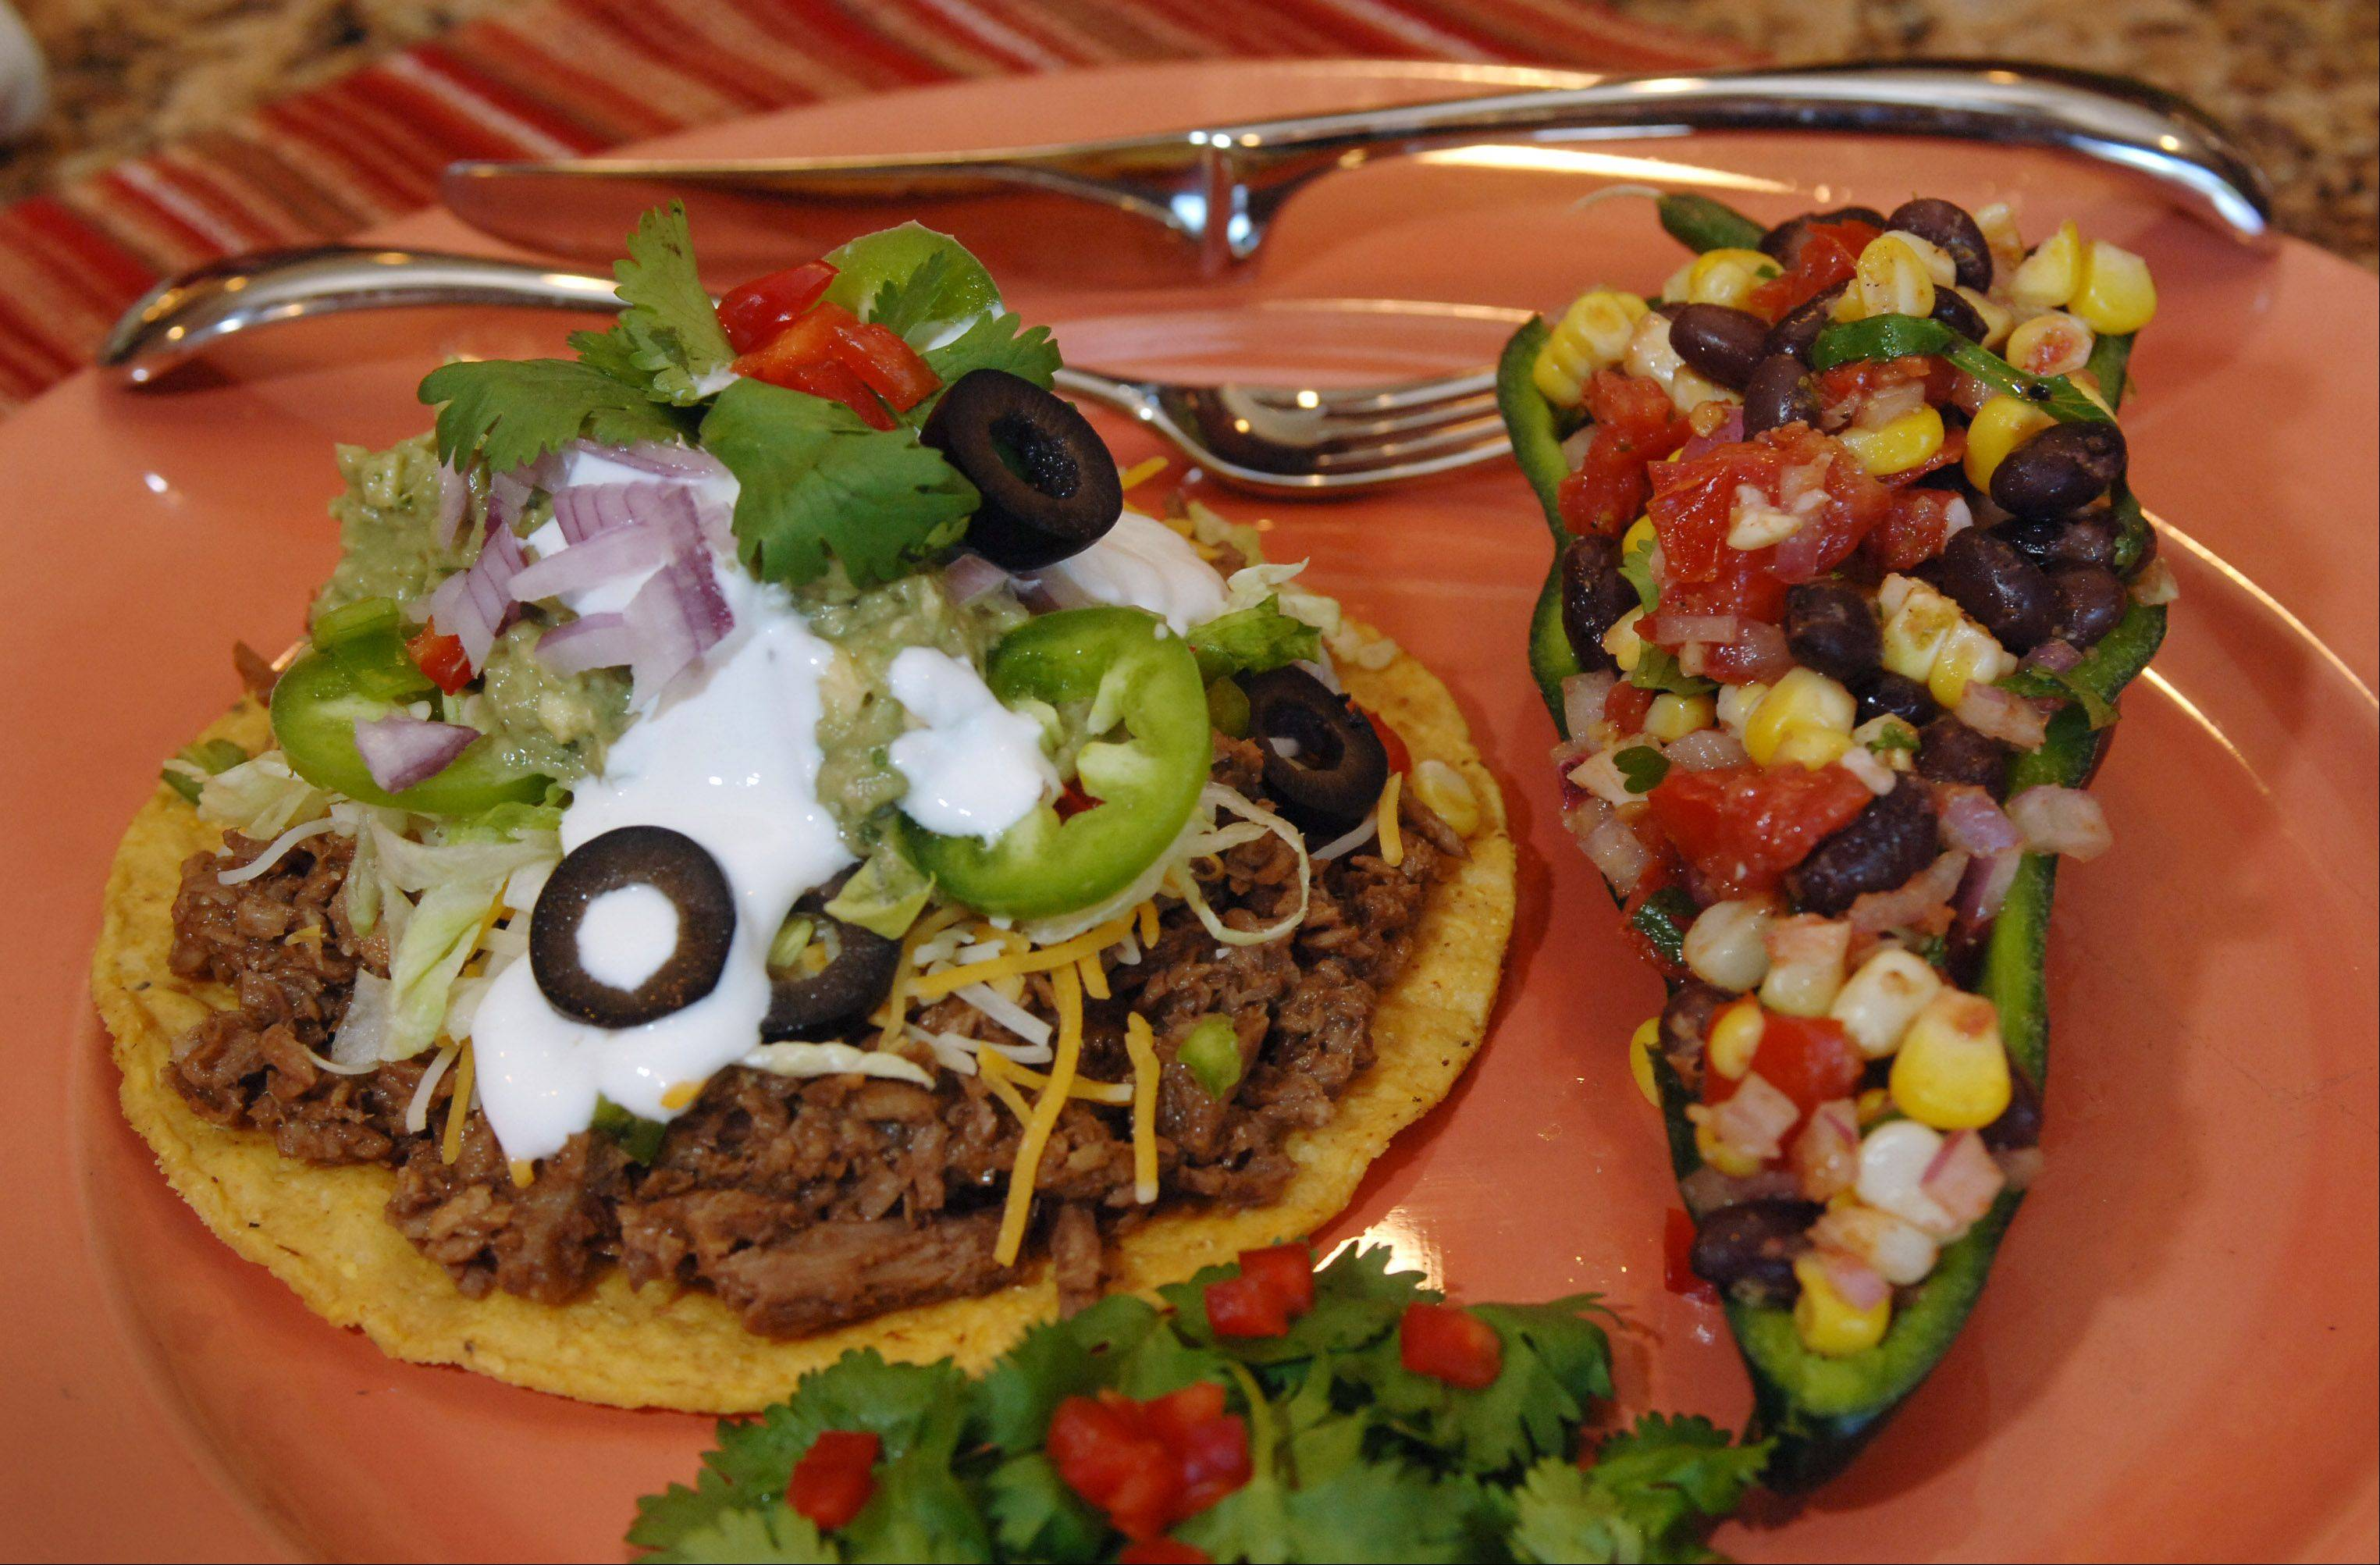 Mary Miske made shredded beef mole tostadas with plantain guacamole and corn, tomato and black bean salad. She stuffs the salad inside a seeded poblano pepper half.